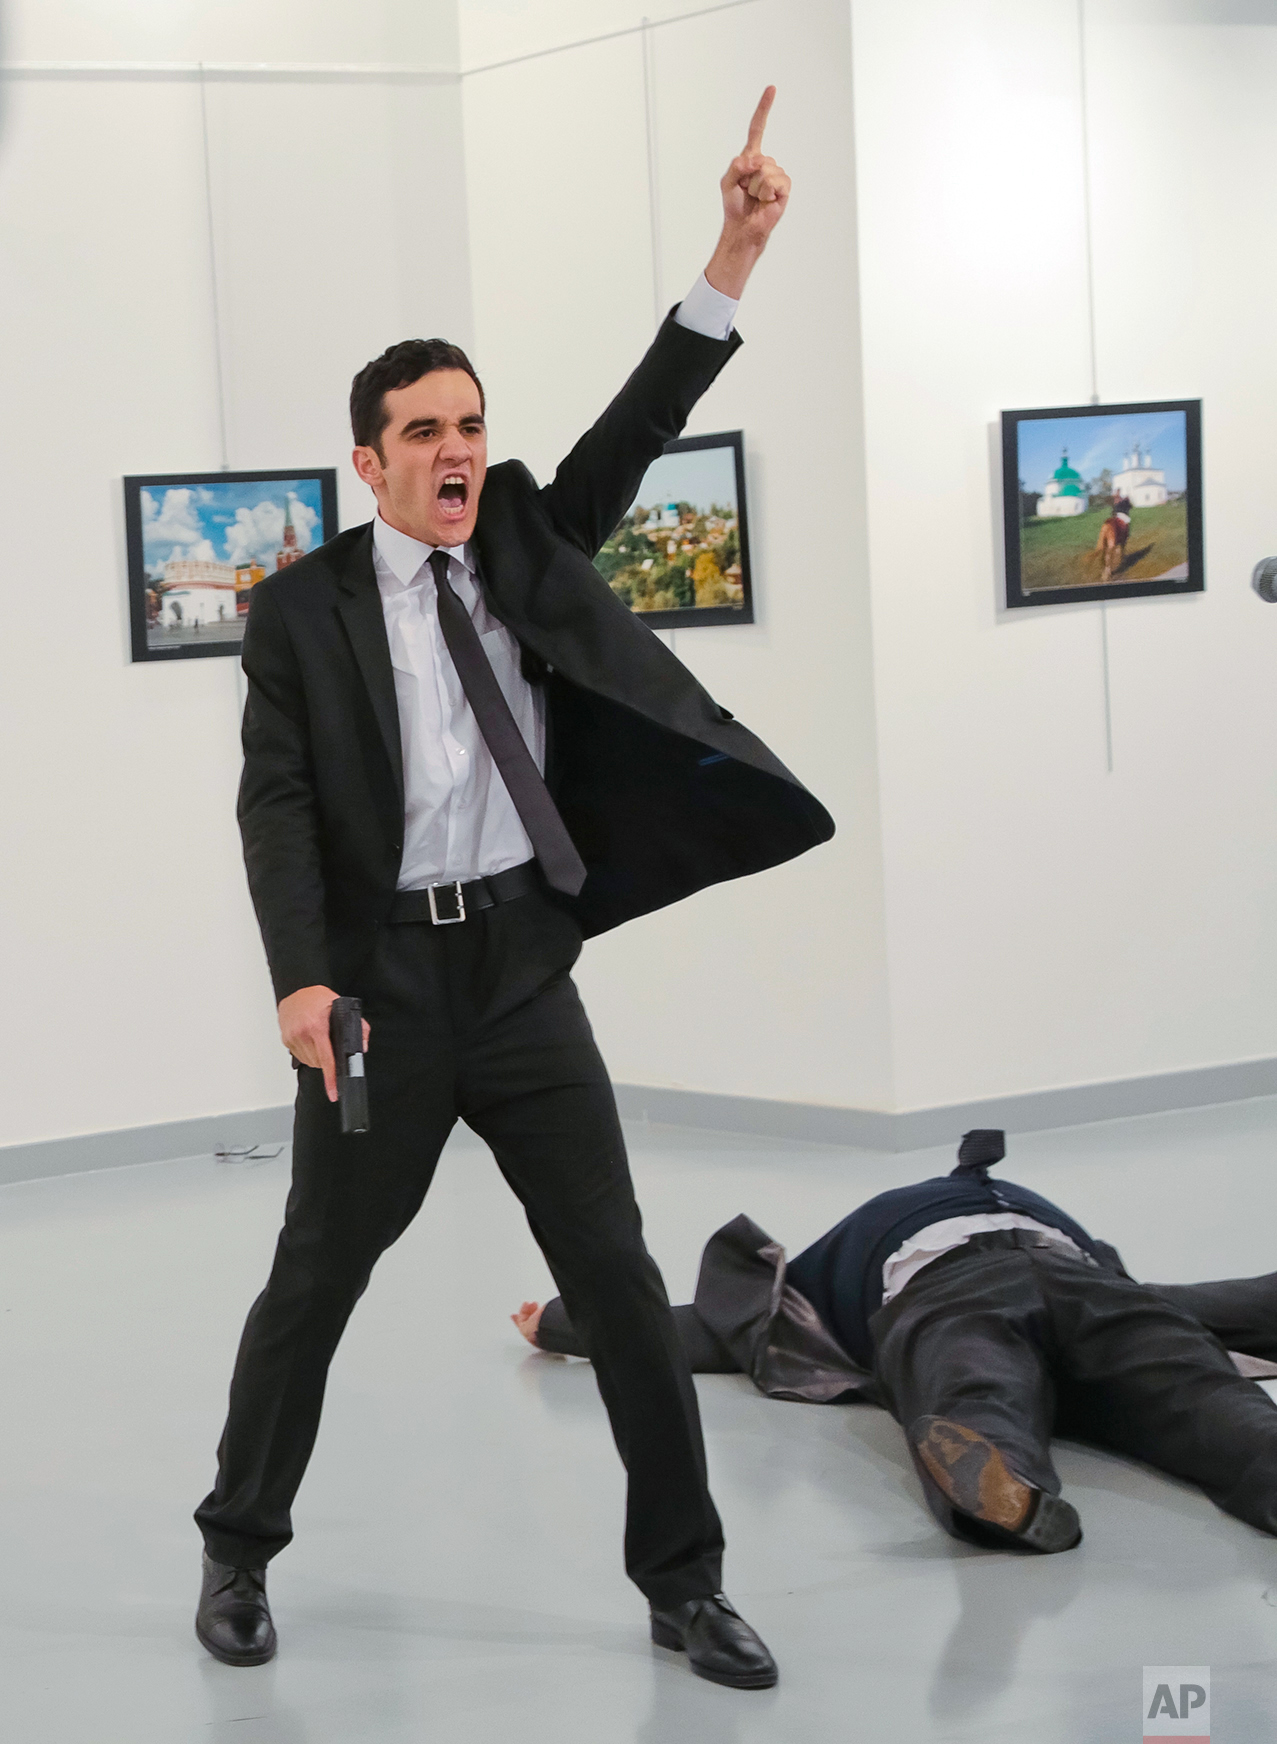 """A man identified as Mevlut Mert Altintas holds up a gun after shooting Andrei Karlov, the Russian Ambassador to Turkey, at a photo gallery in Ankara, Turkey, Monday, Dec. 19, 2016. Shouting """"Don't forget Aleppo! Don't forget Syria!"""" Altintas fatally shot Karlov in front of stunned onlookers at a photo exhibit. Police killed the assailant after a shootout. (AP Photo/Burhan Ozbilici)"""